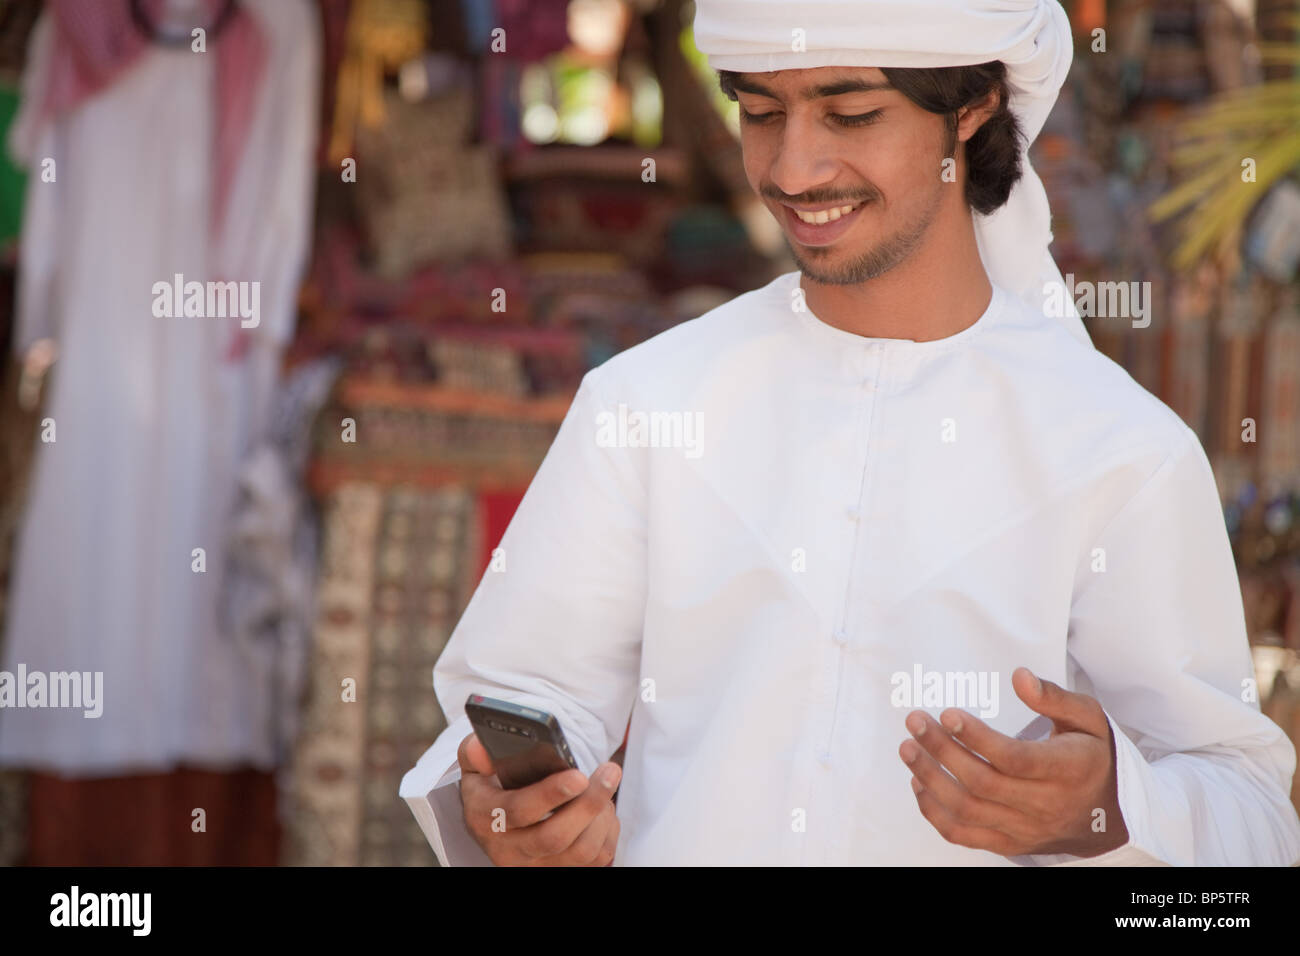 Middle Eastern man looking at mobile phone - Stock Image